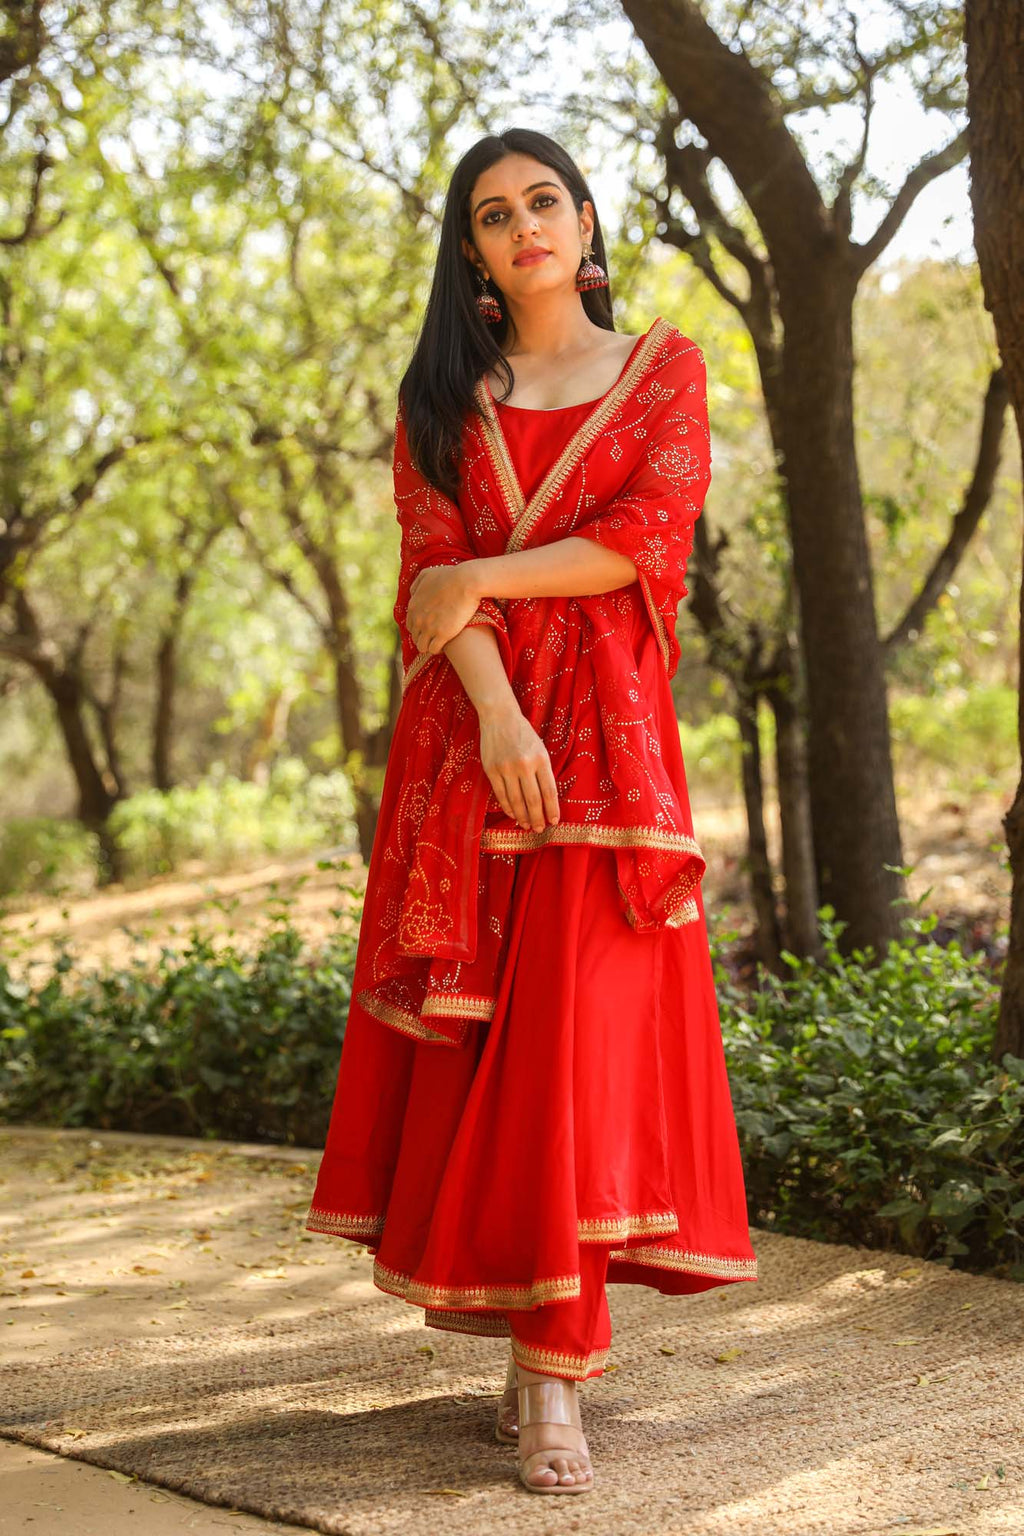 Nafisa Red Sleeveless Anarkali Suit Set with Gold Lace Details - Riviera Closet